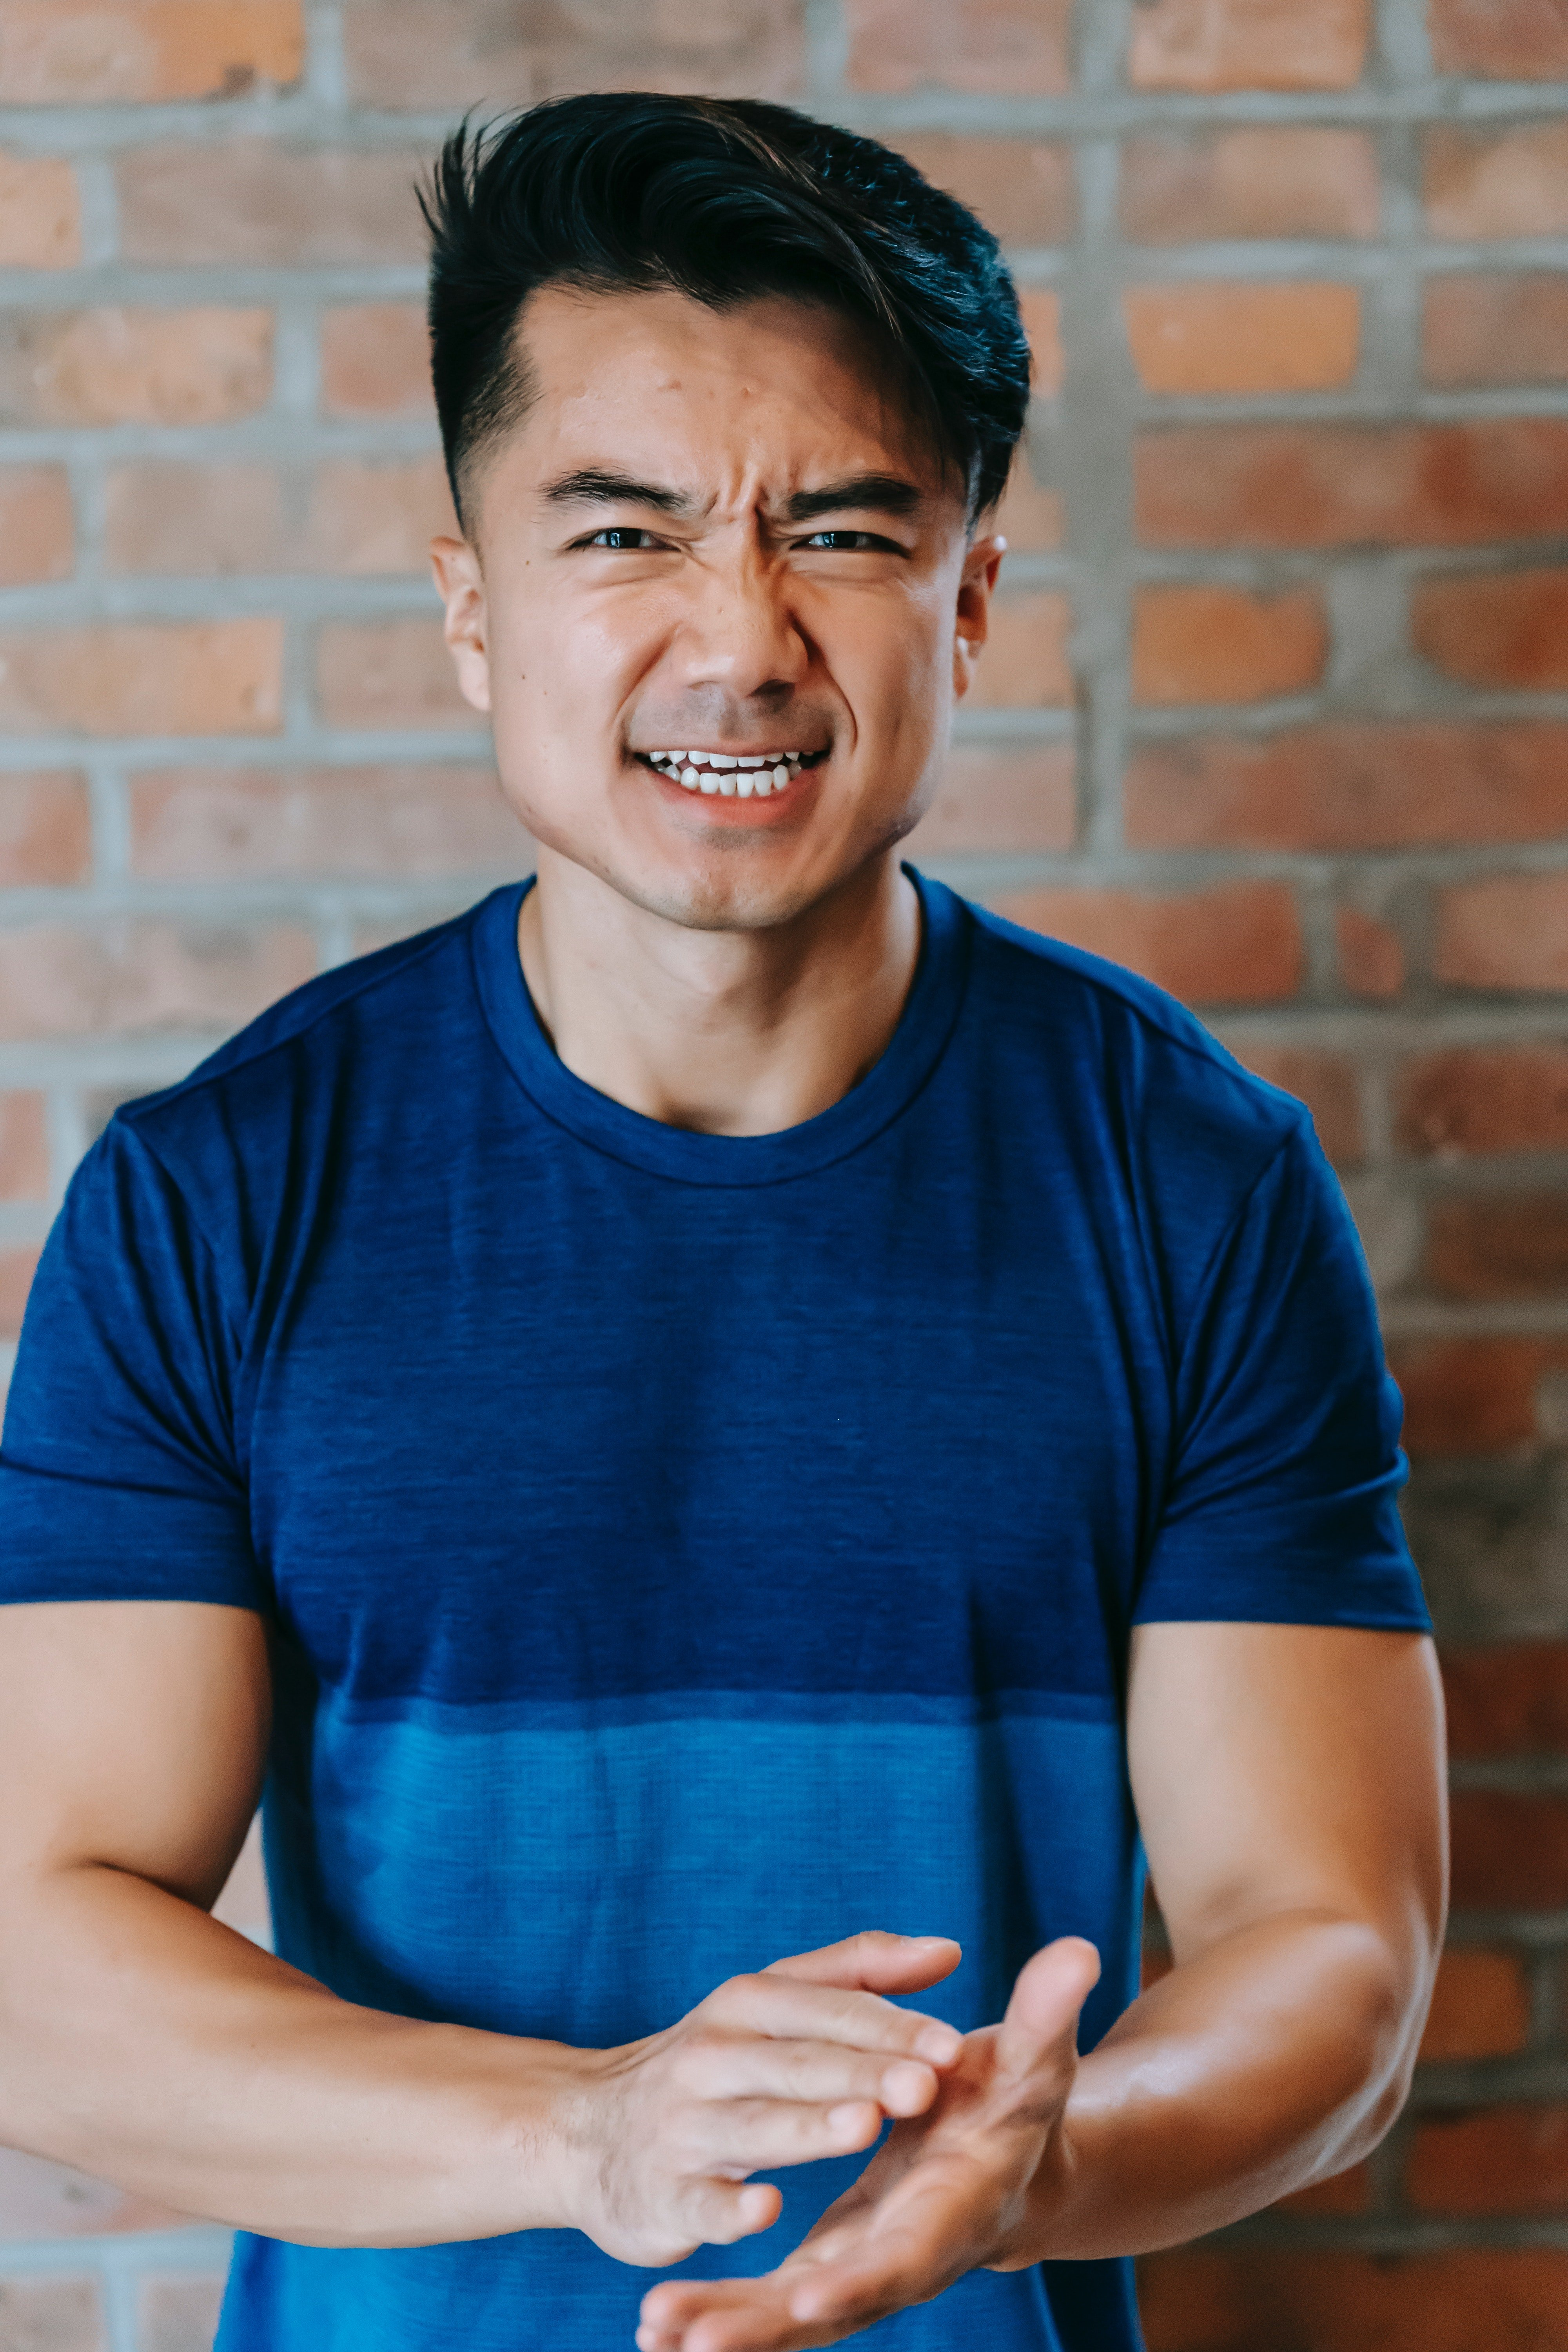 Angry man in a blue T-shirt | Photo: Pexels